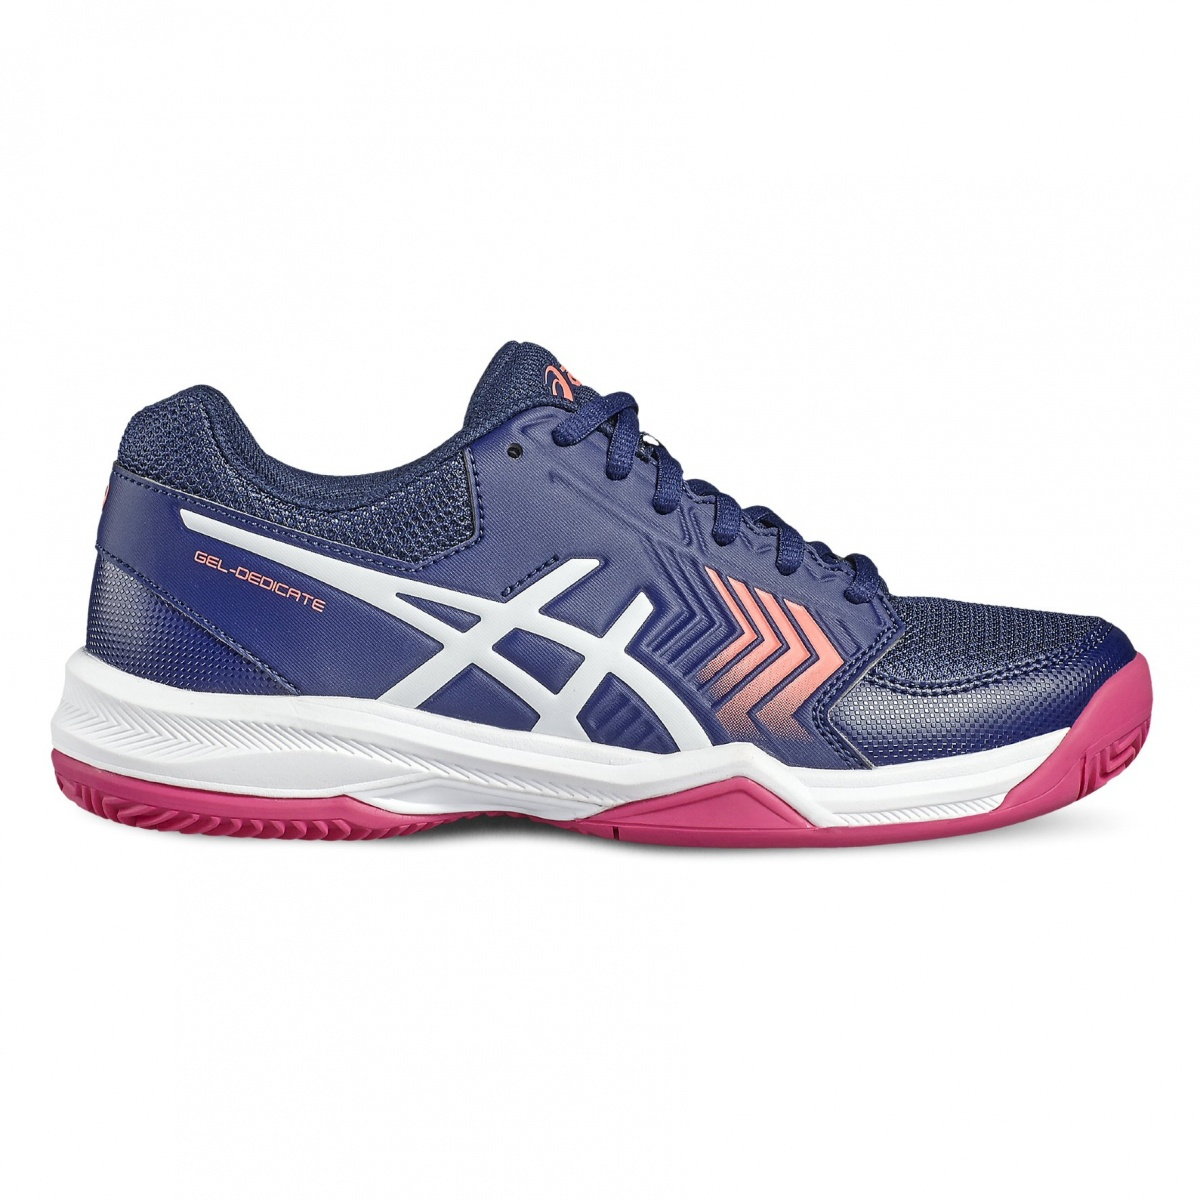 asics gel dedicate 5 clay 2017 indigo tennisschuhe damen online bestellen. Black Bedroom Furniture Sets. Home Design Ideas